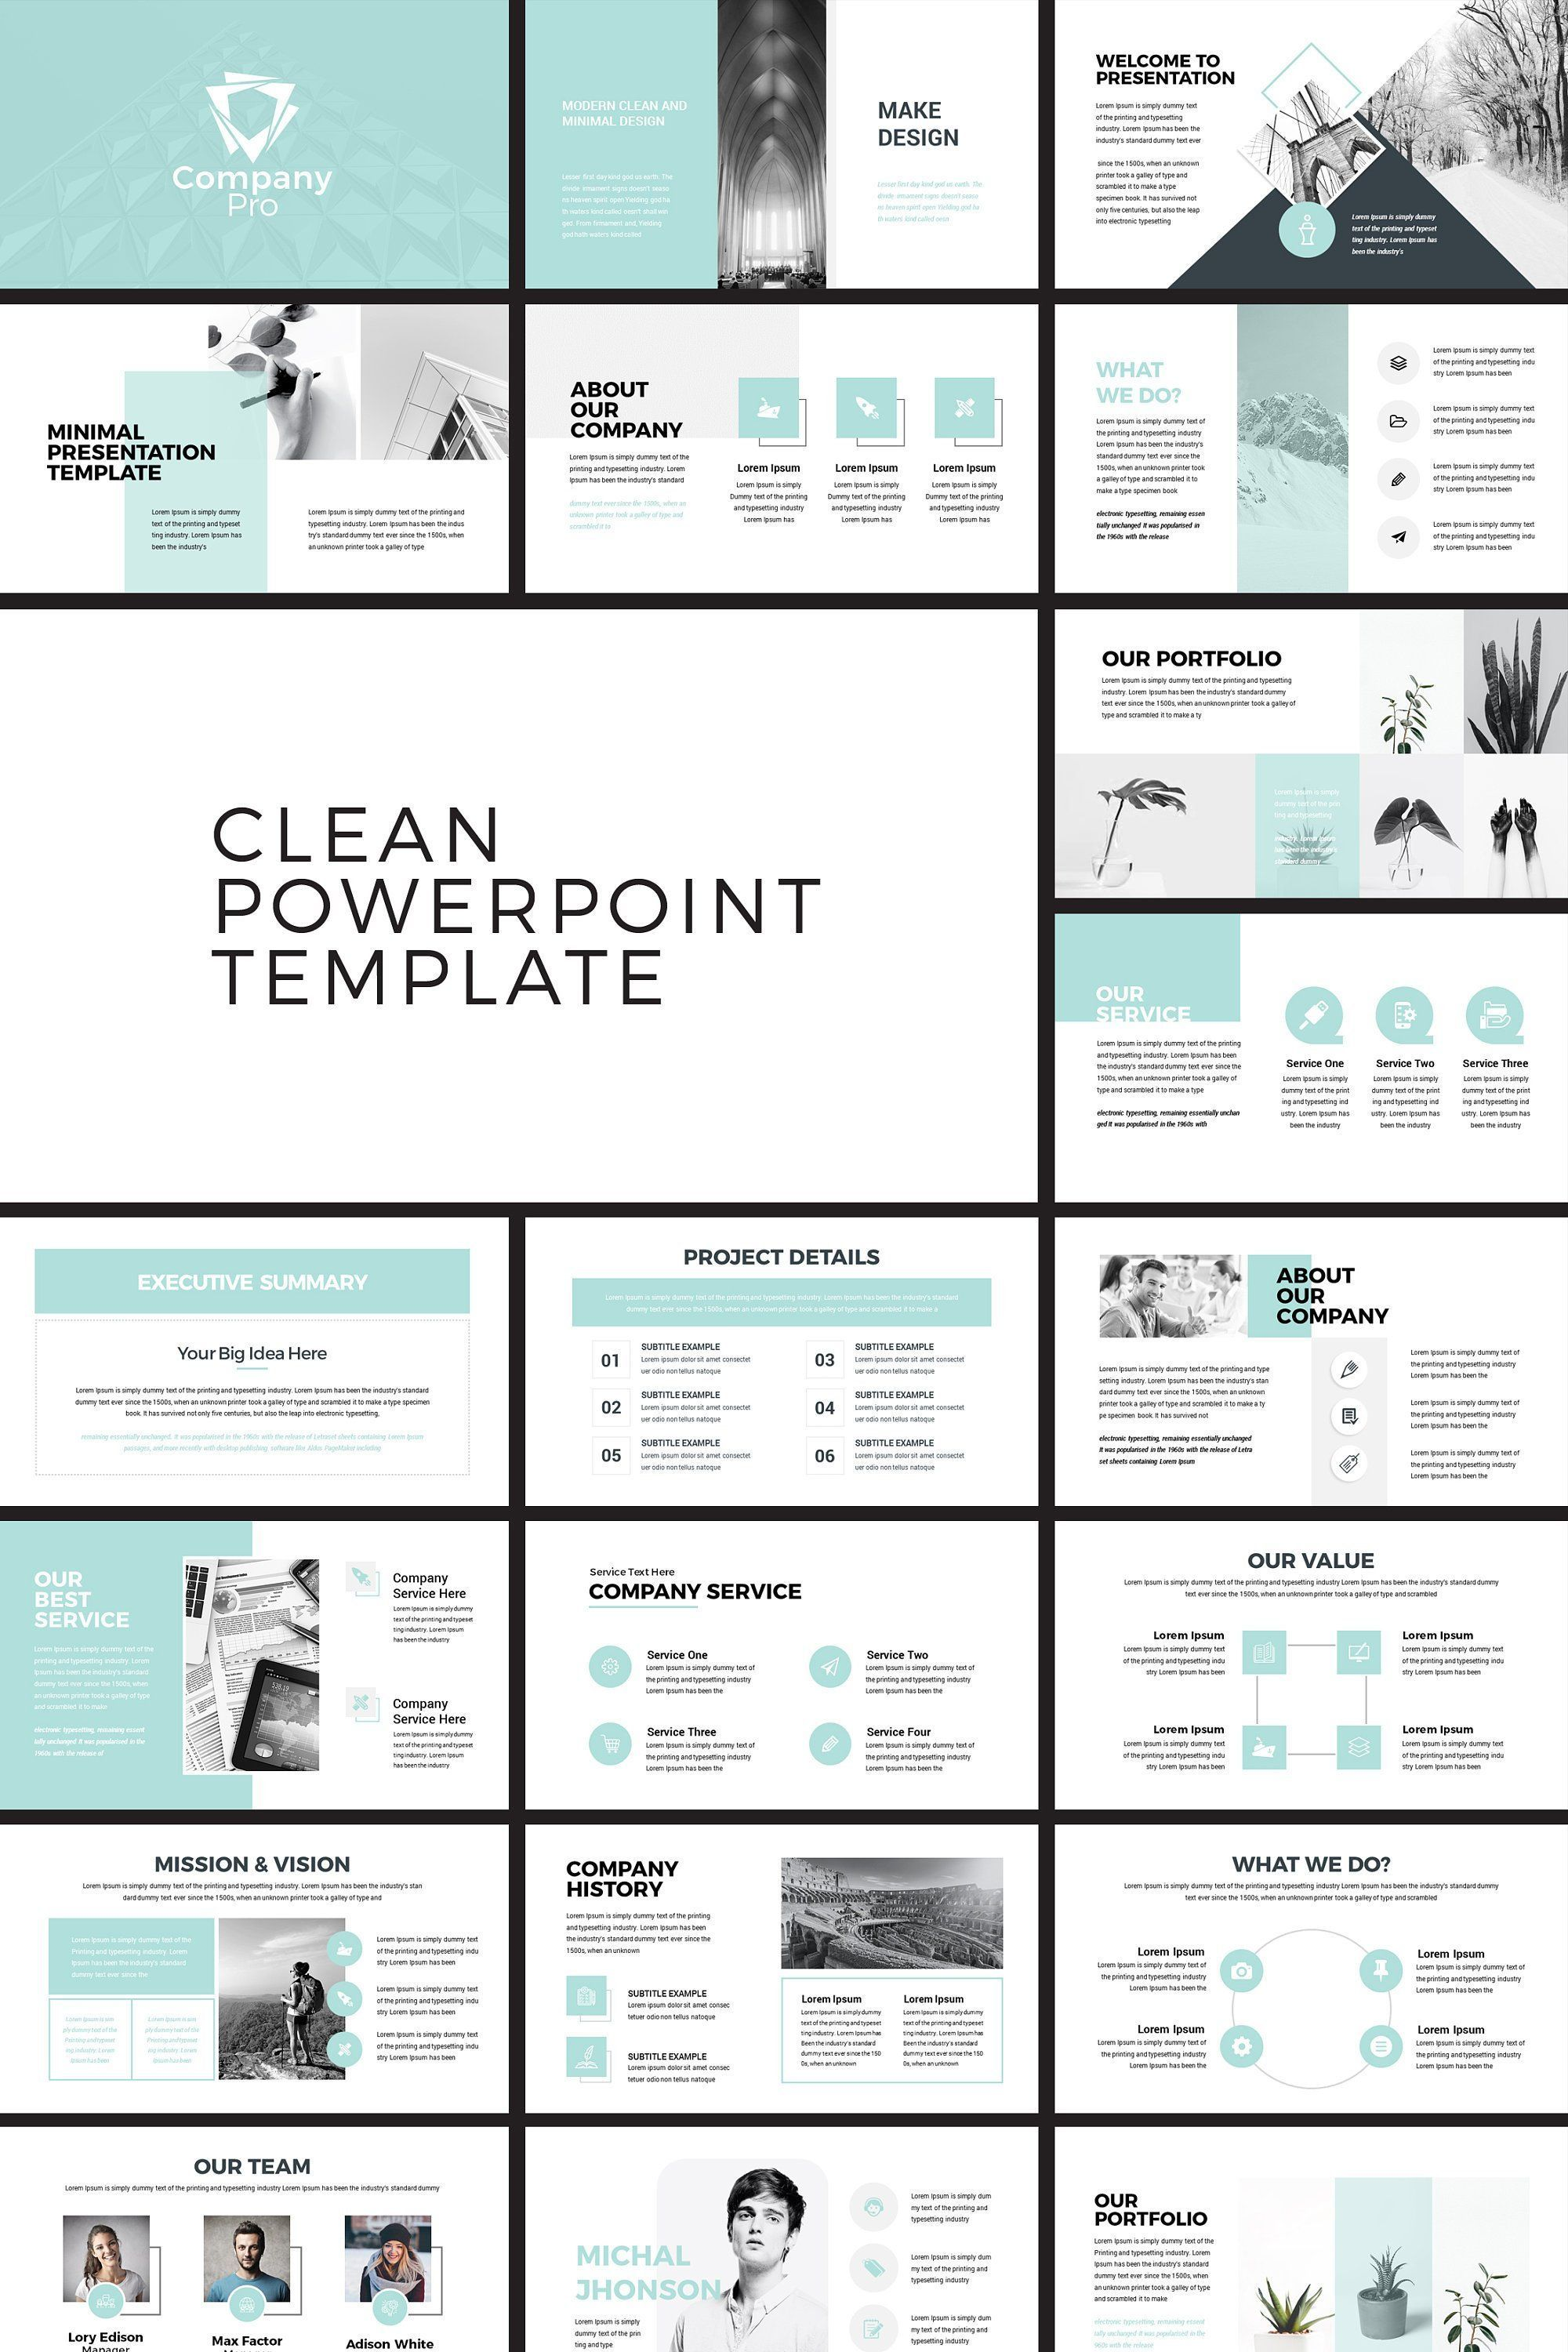 Company Pro Clean Business Powerpoint Presentation Template Powerpoint Company Pro Clean Business Pow Powerpoint Vorlagen Powerpoint Prasentation Prasentation